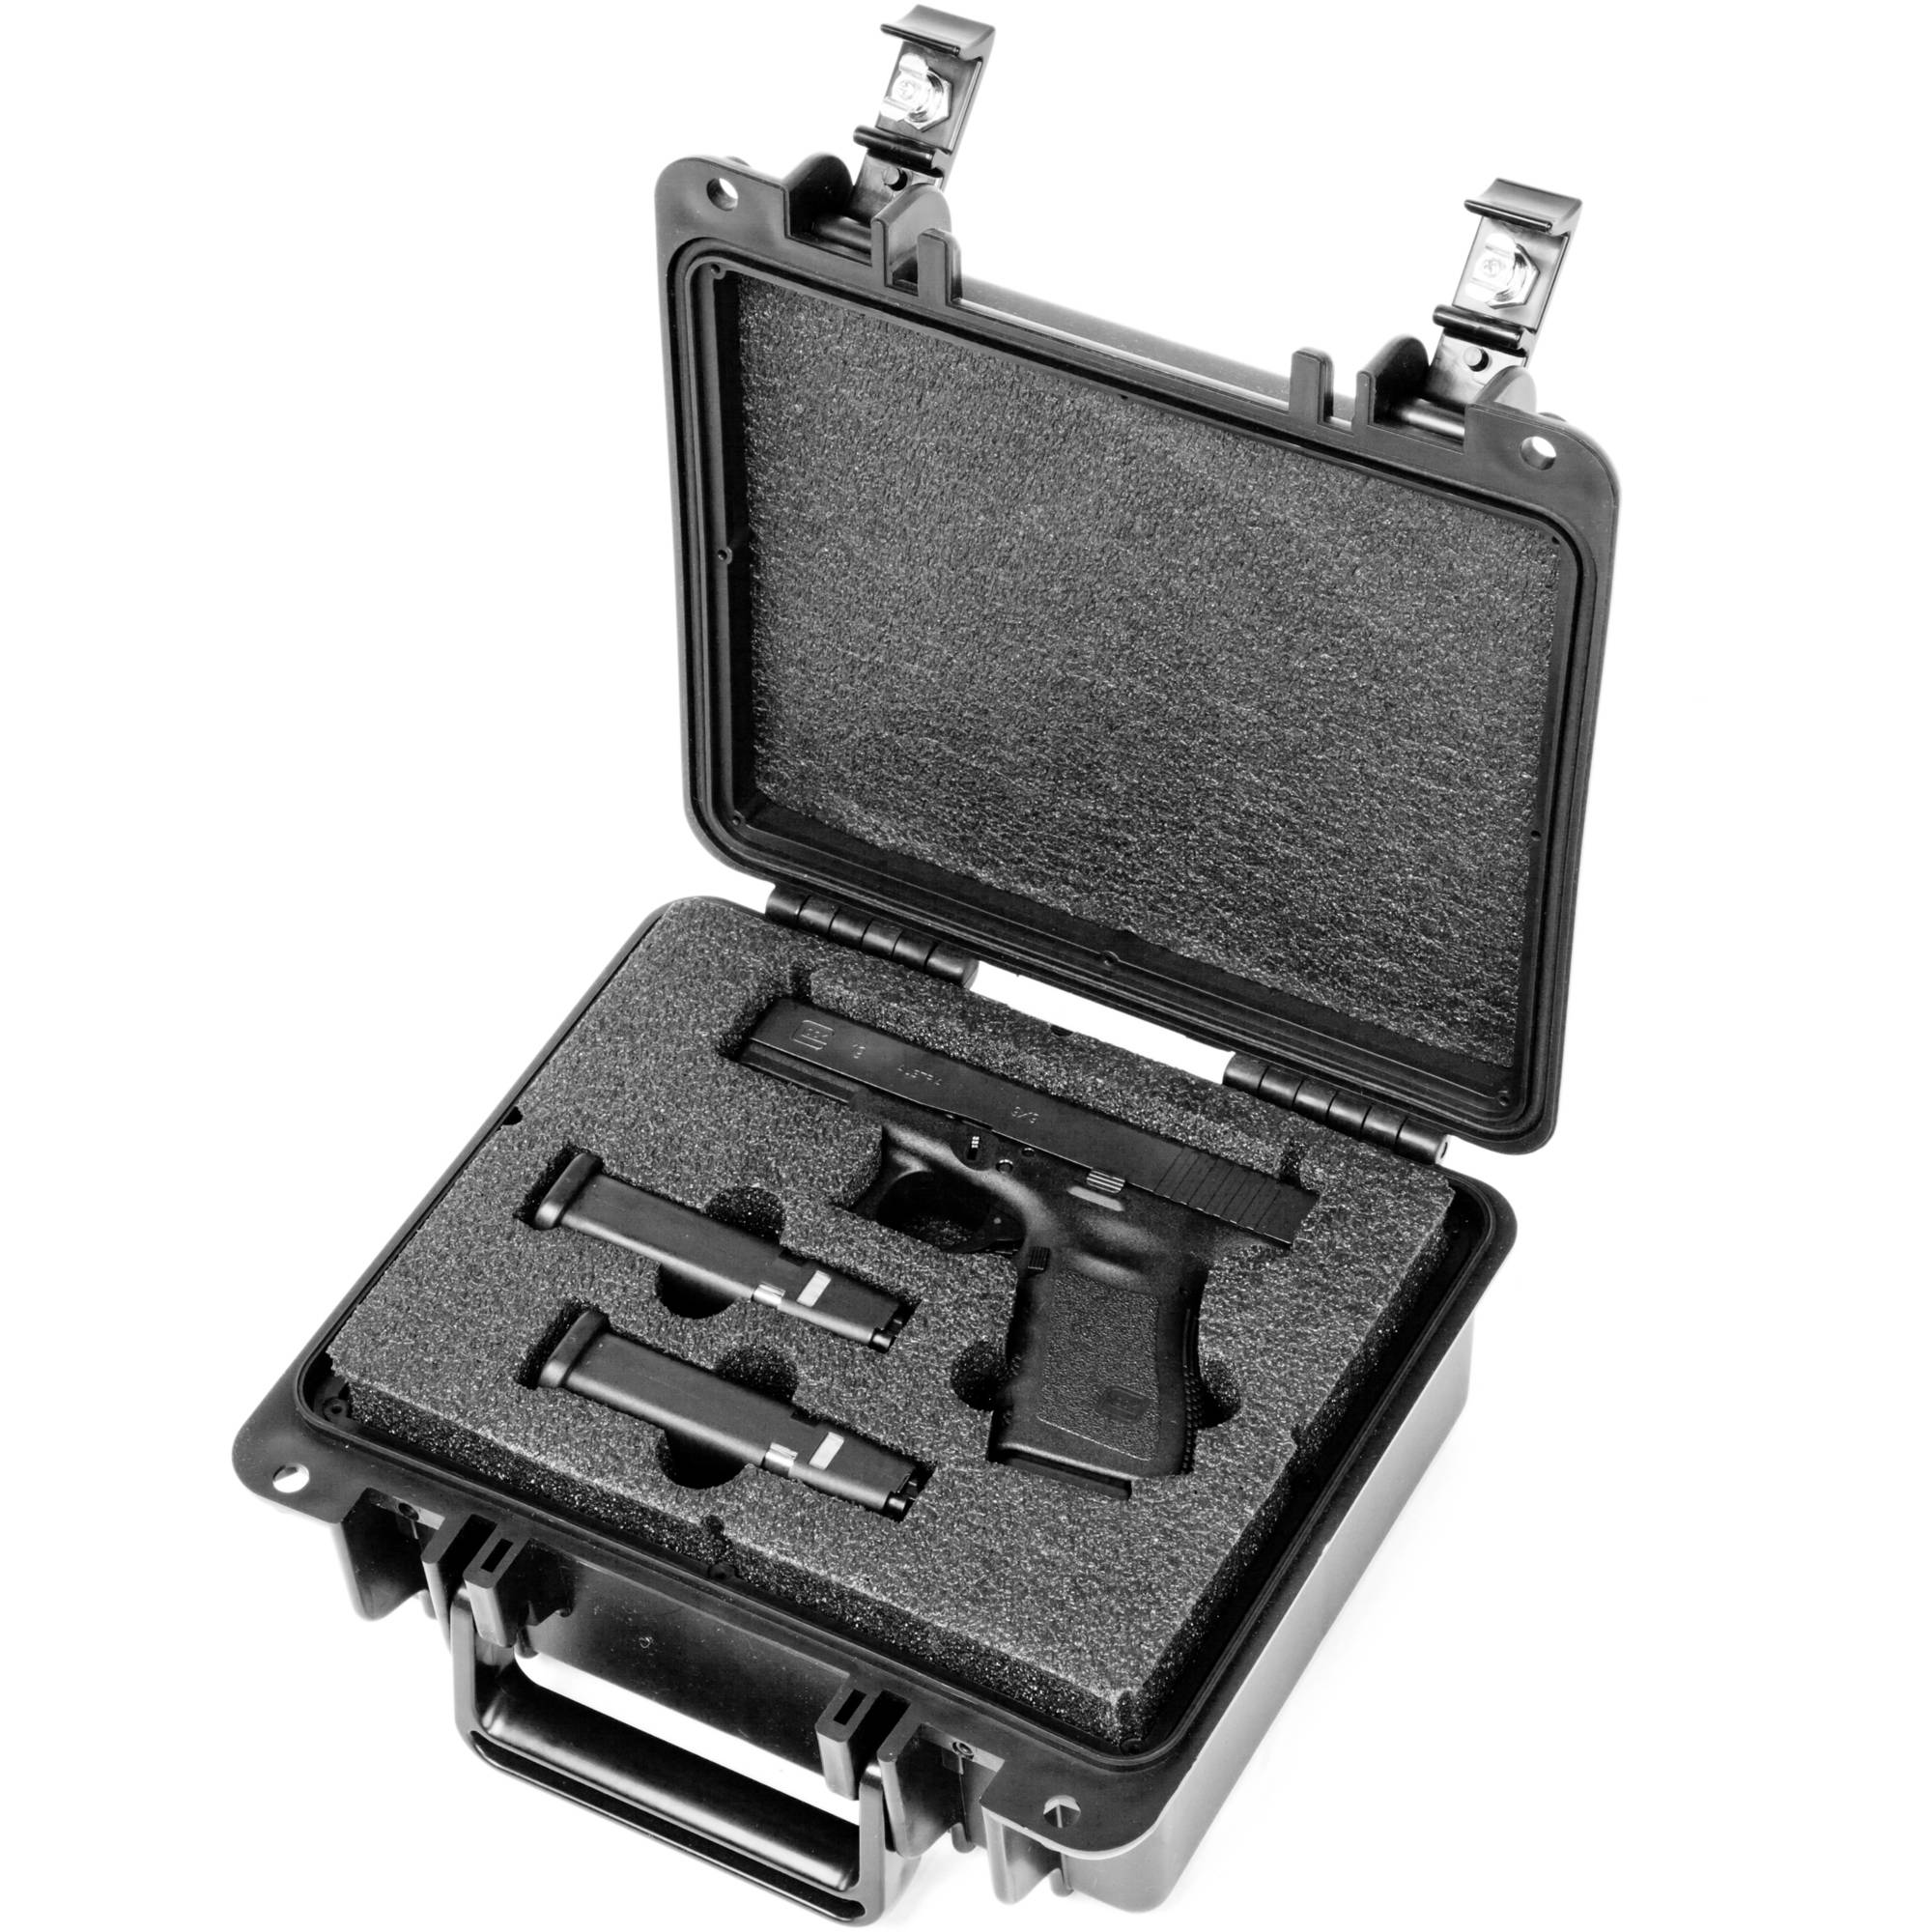 Quick Fire Glock 19, 23, 25, 32, 38 Pistol Case, QF300-G02 by